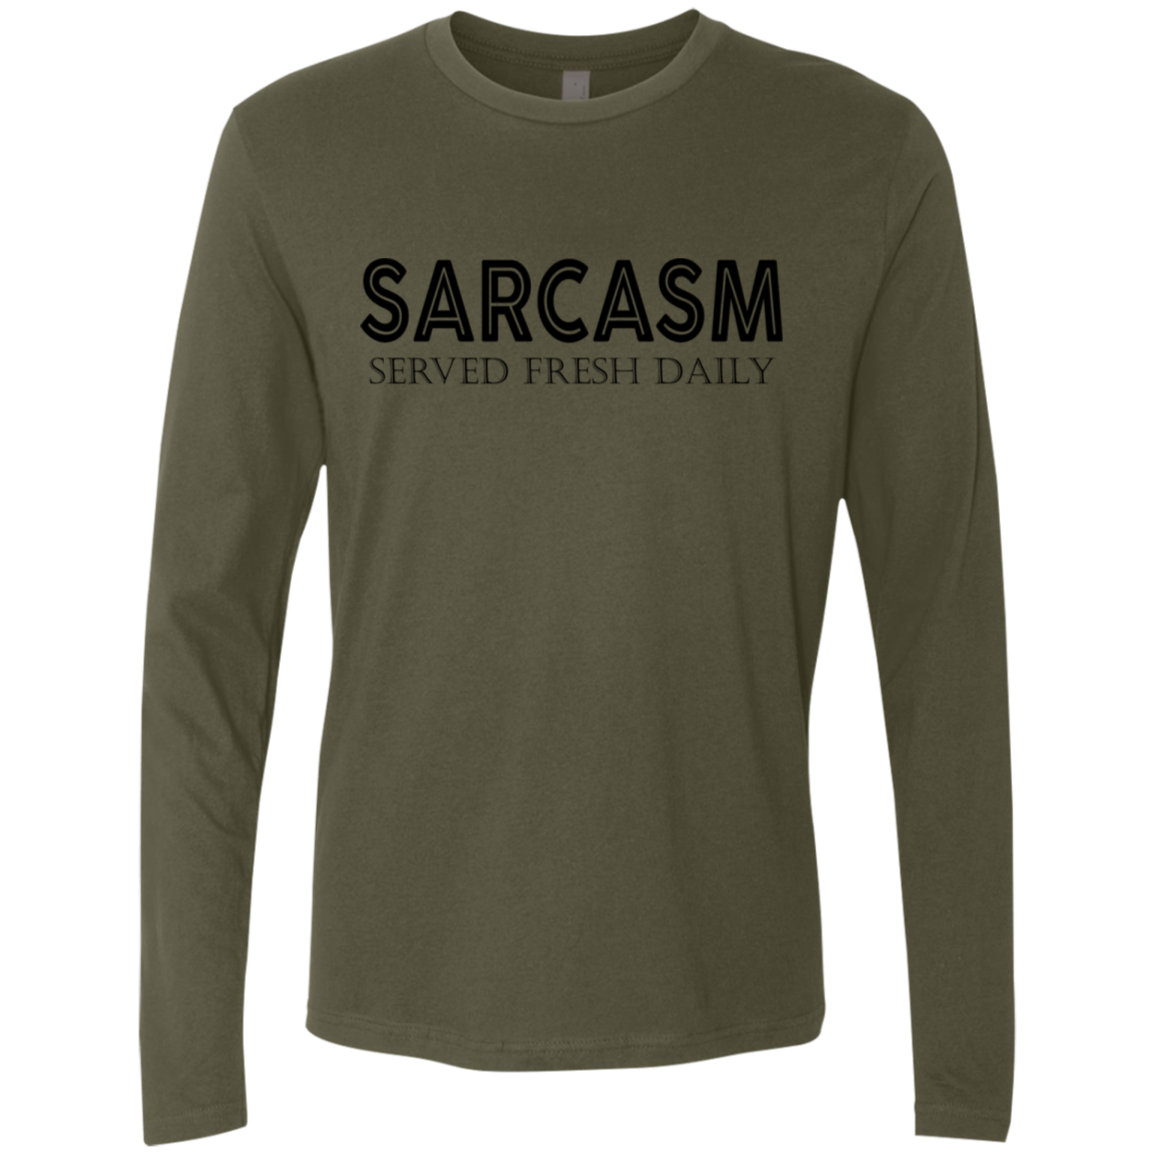 Sarcasm Served Fresh Daily Men's Long Sleeve Tee